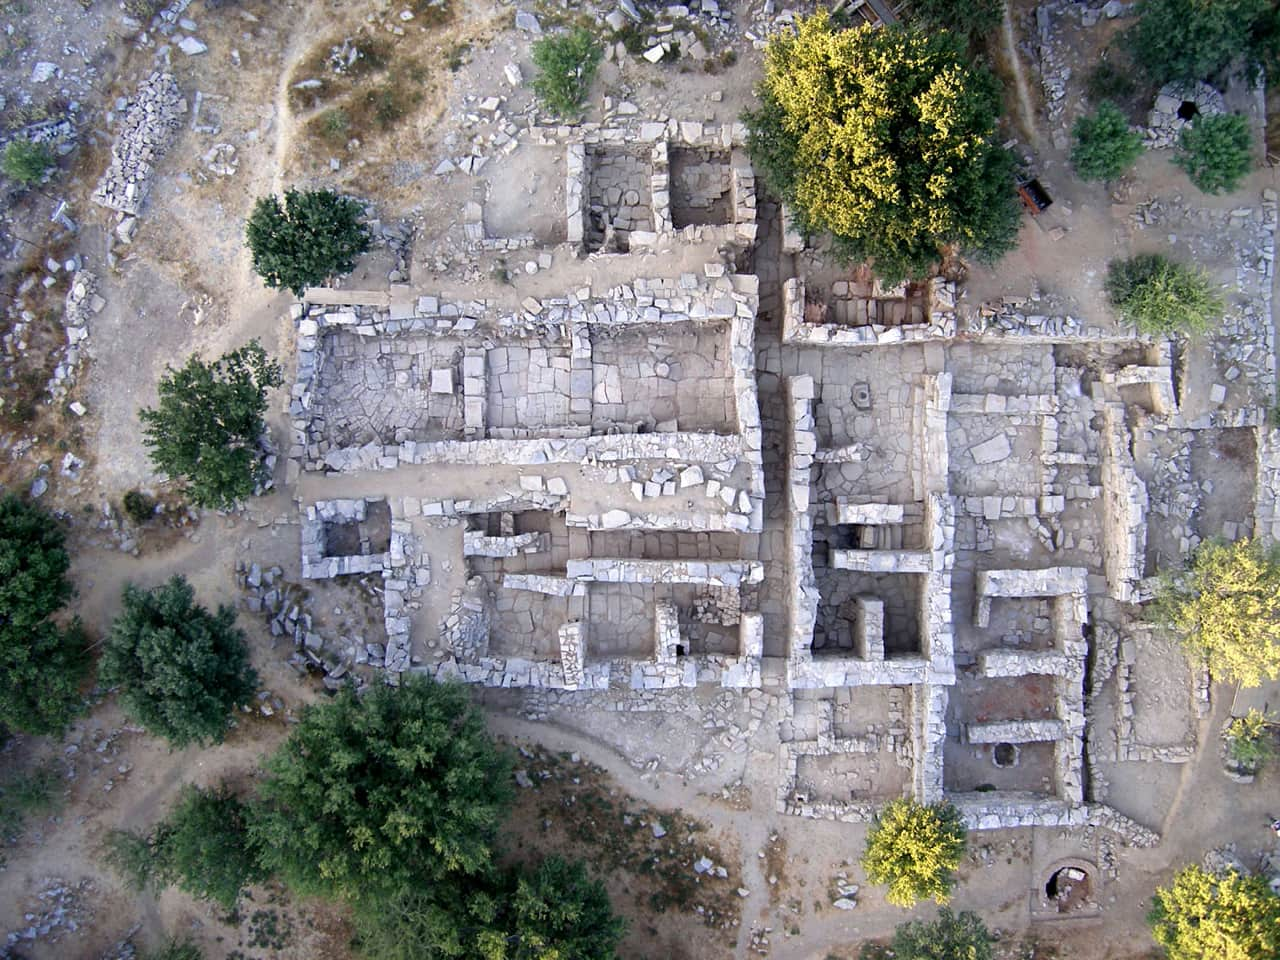 Zominthos Excavation on Crete Reveals New Minoan Finds